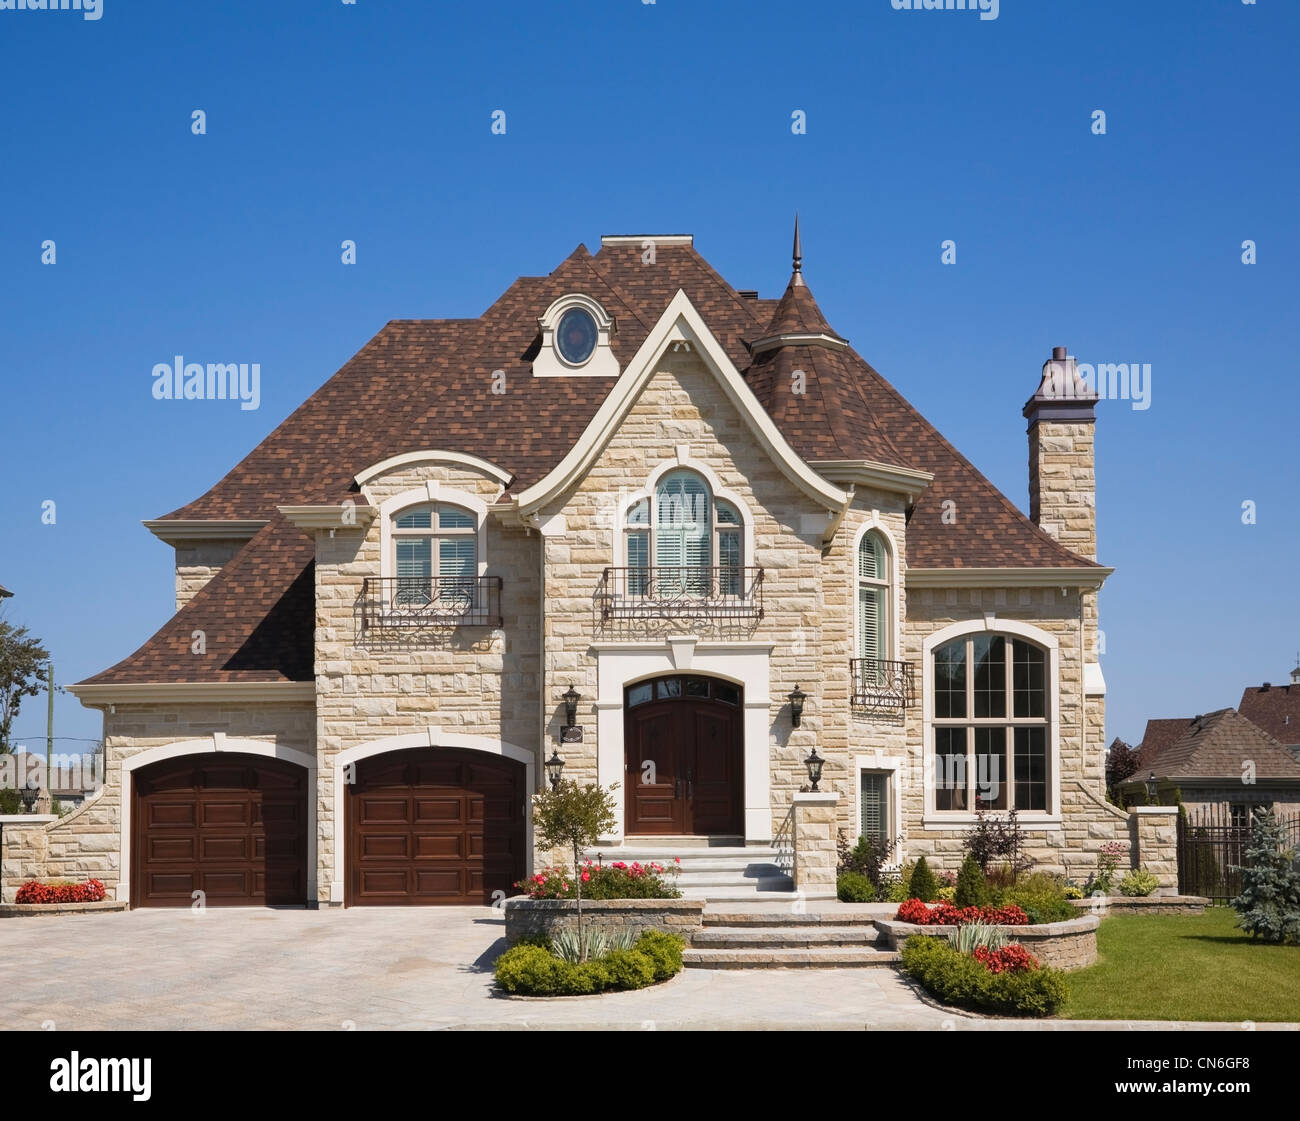 Luxurious Home With Two Car Garage, Landscaped Front Yard